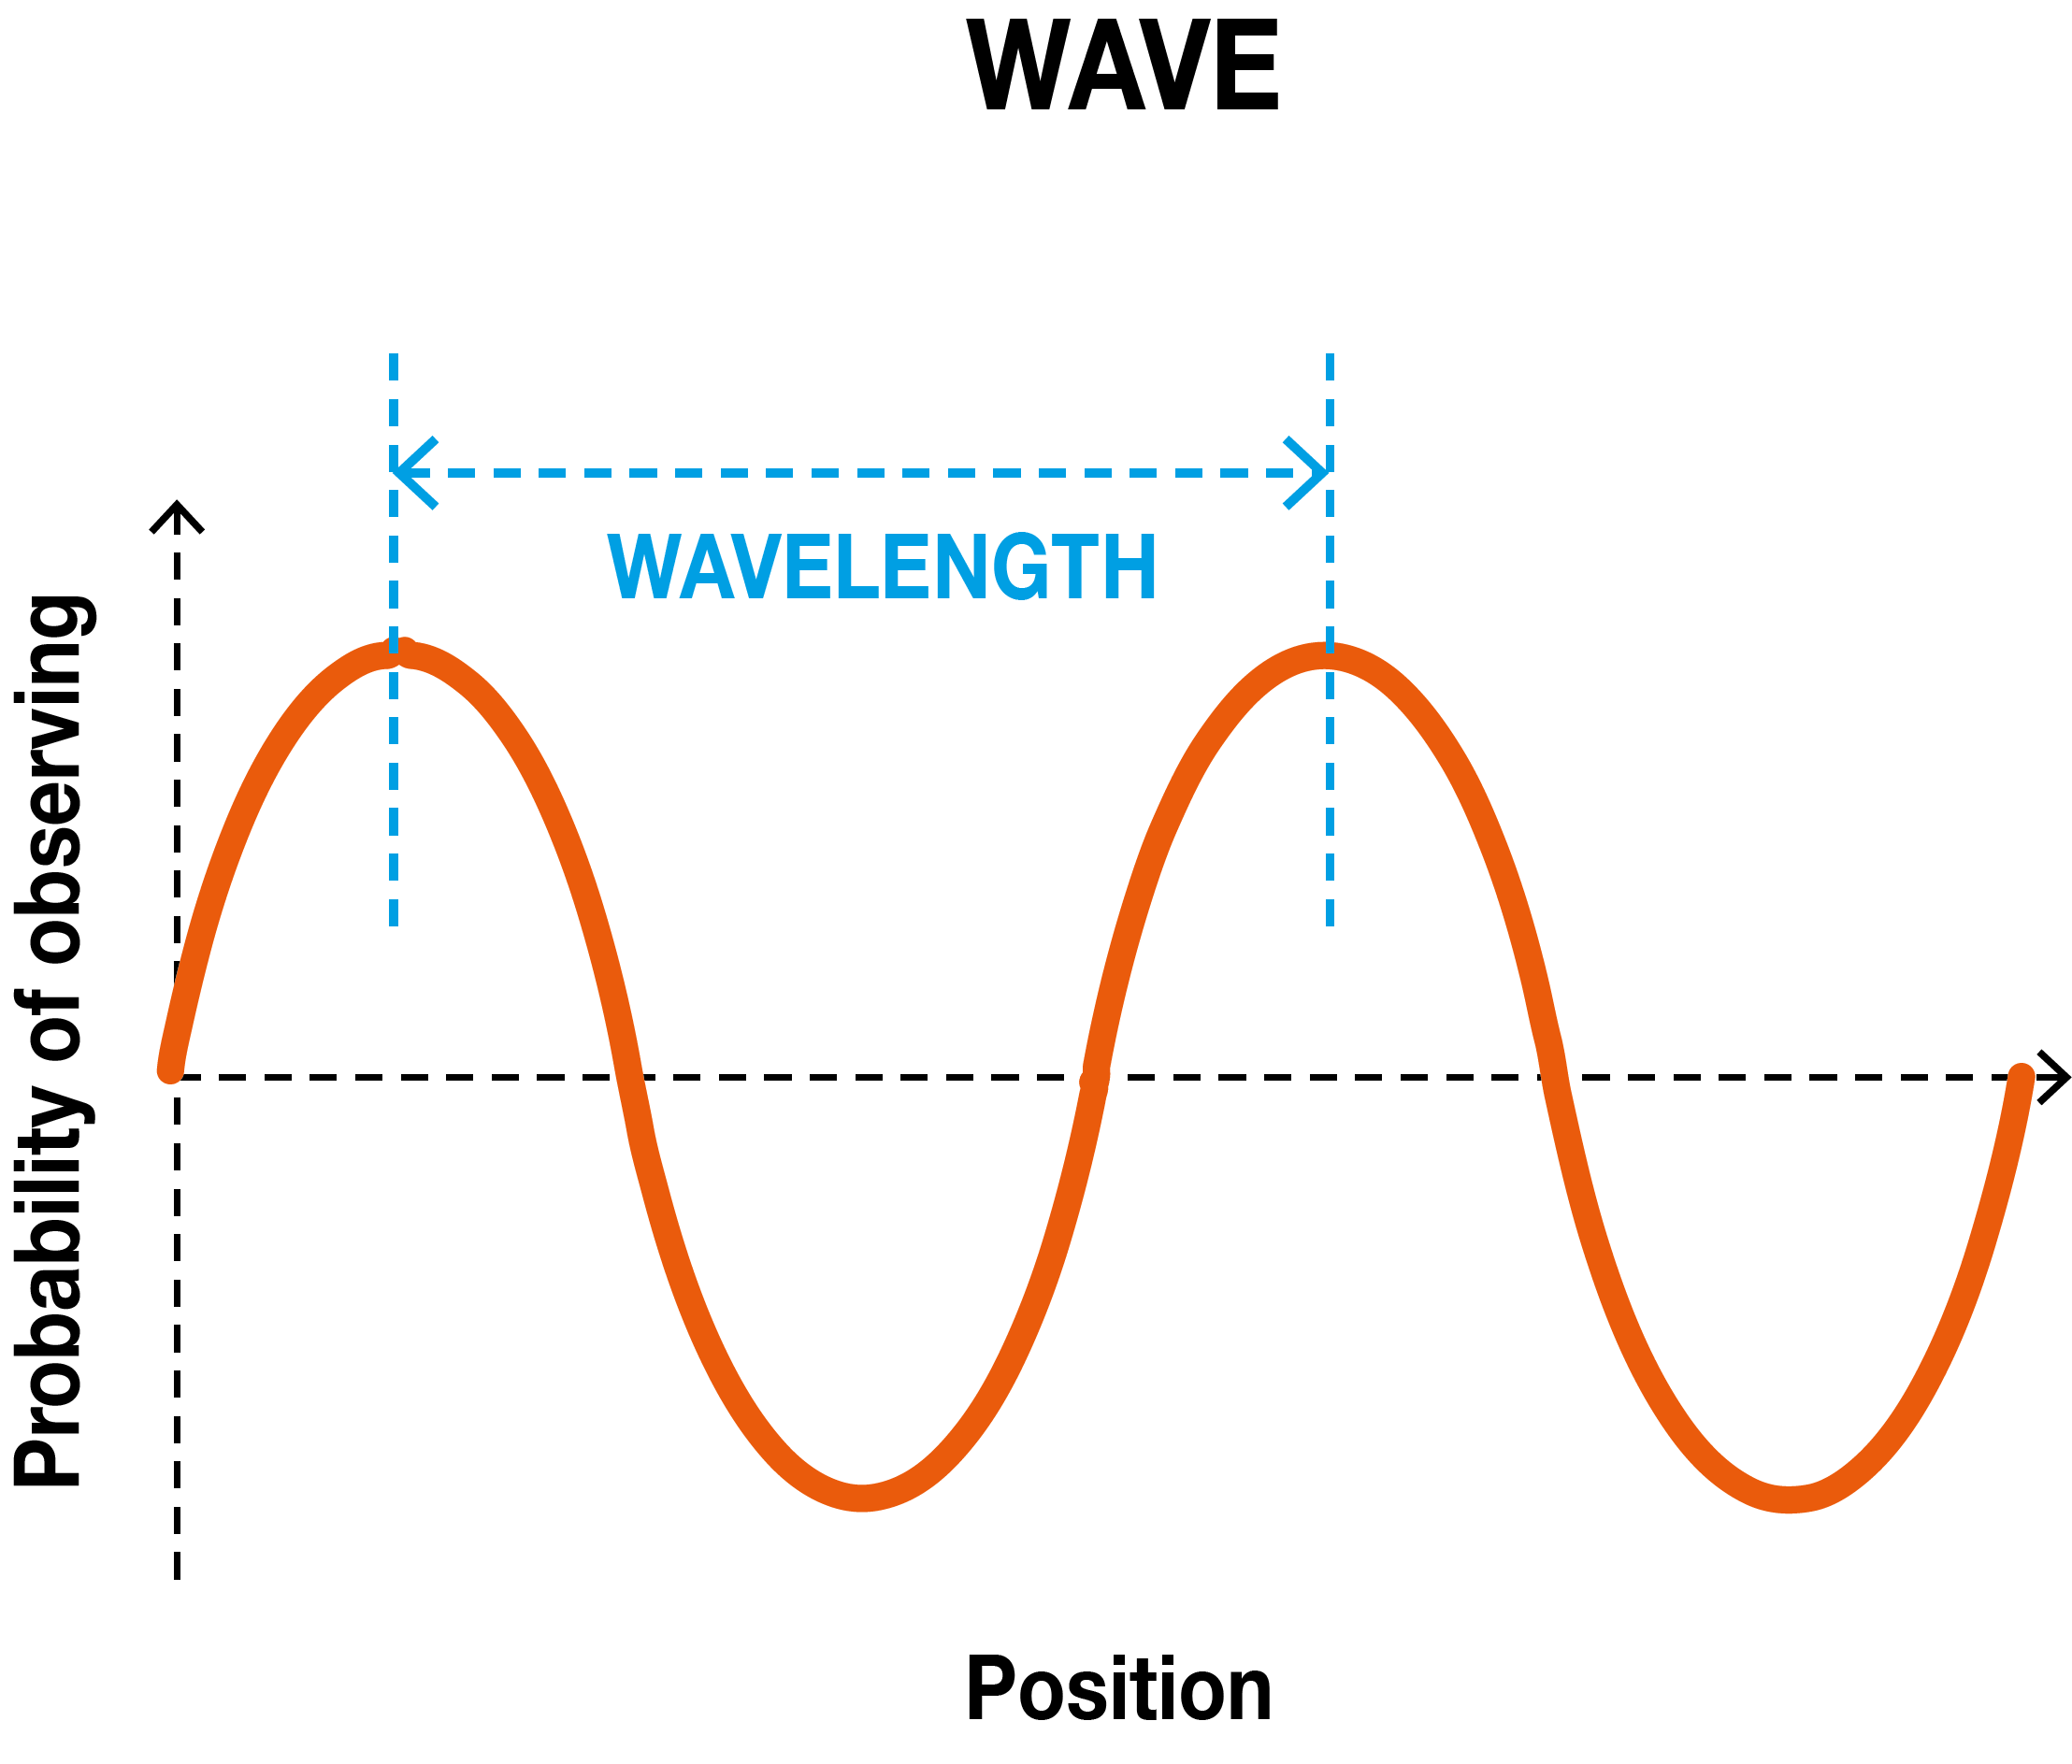 Wave graph showing a wave's position having different probabilites of being observed in a many different positions in space